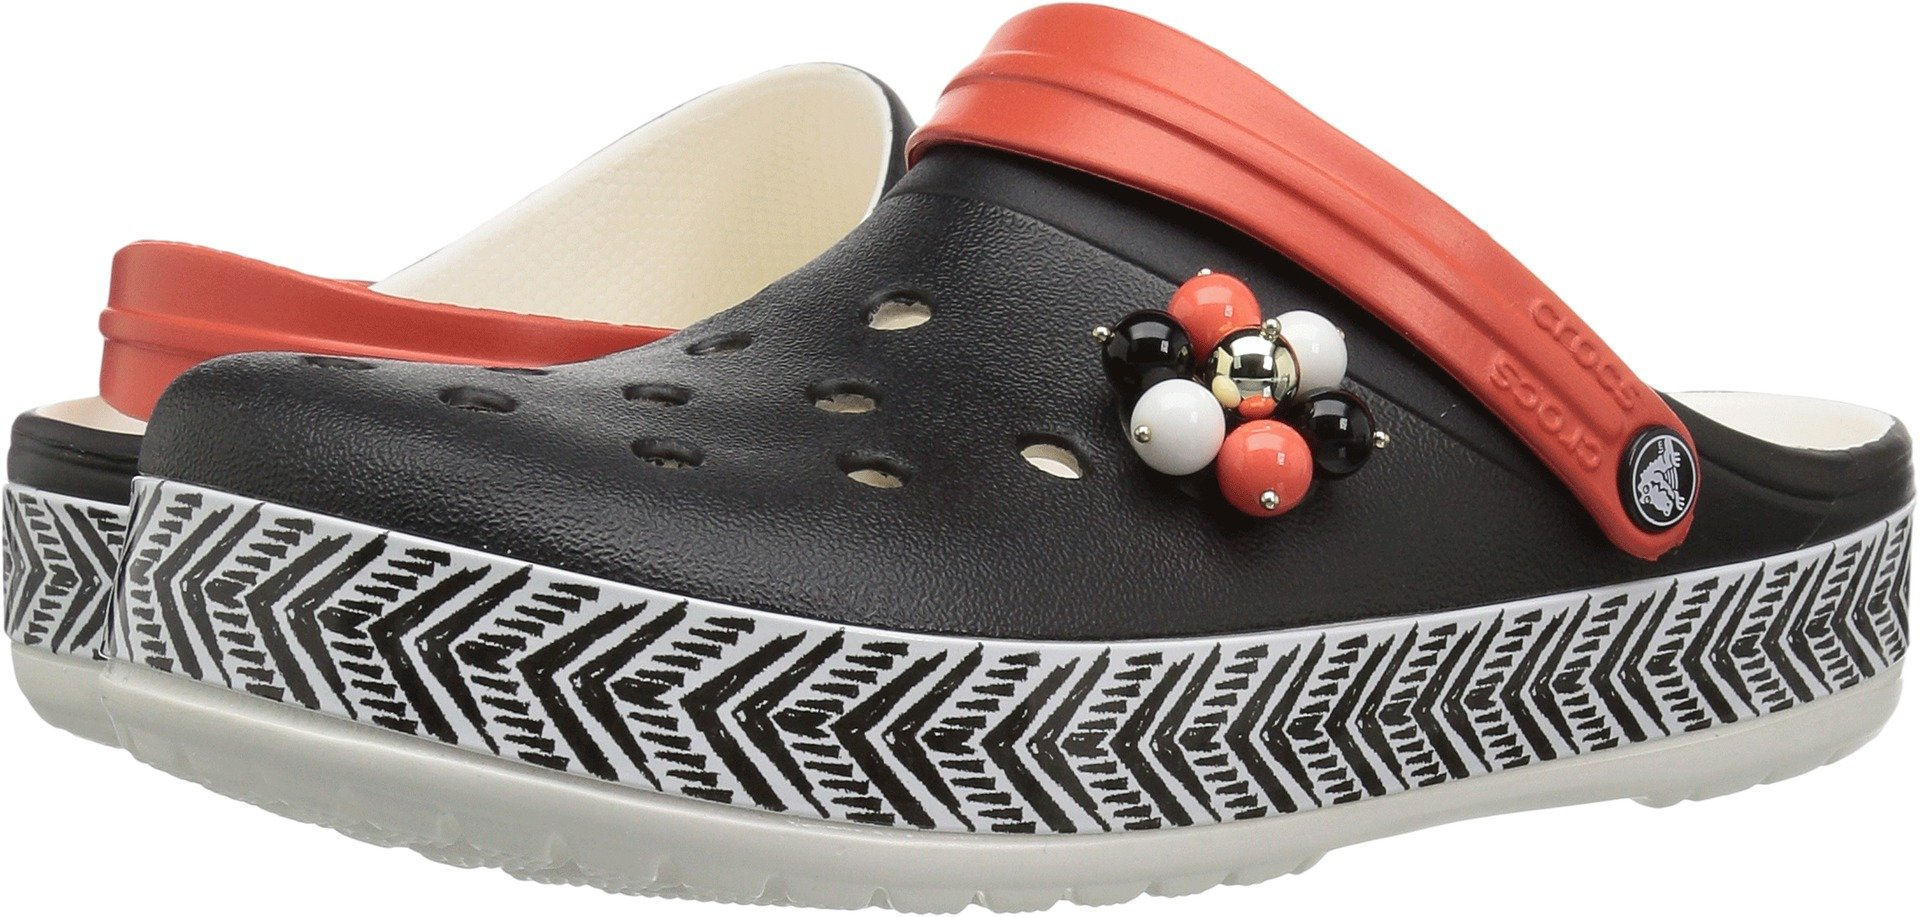 Crocs Women's Drew Barrymore Crocband Chevron Clog, Black/White, 7 US Men/ 9 US Women M US